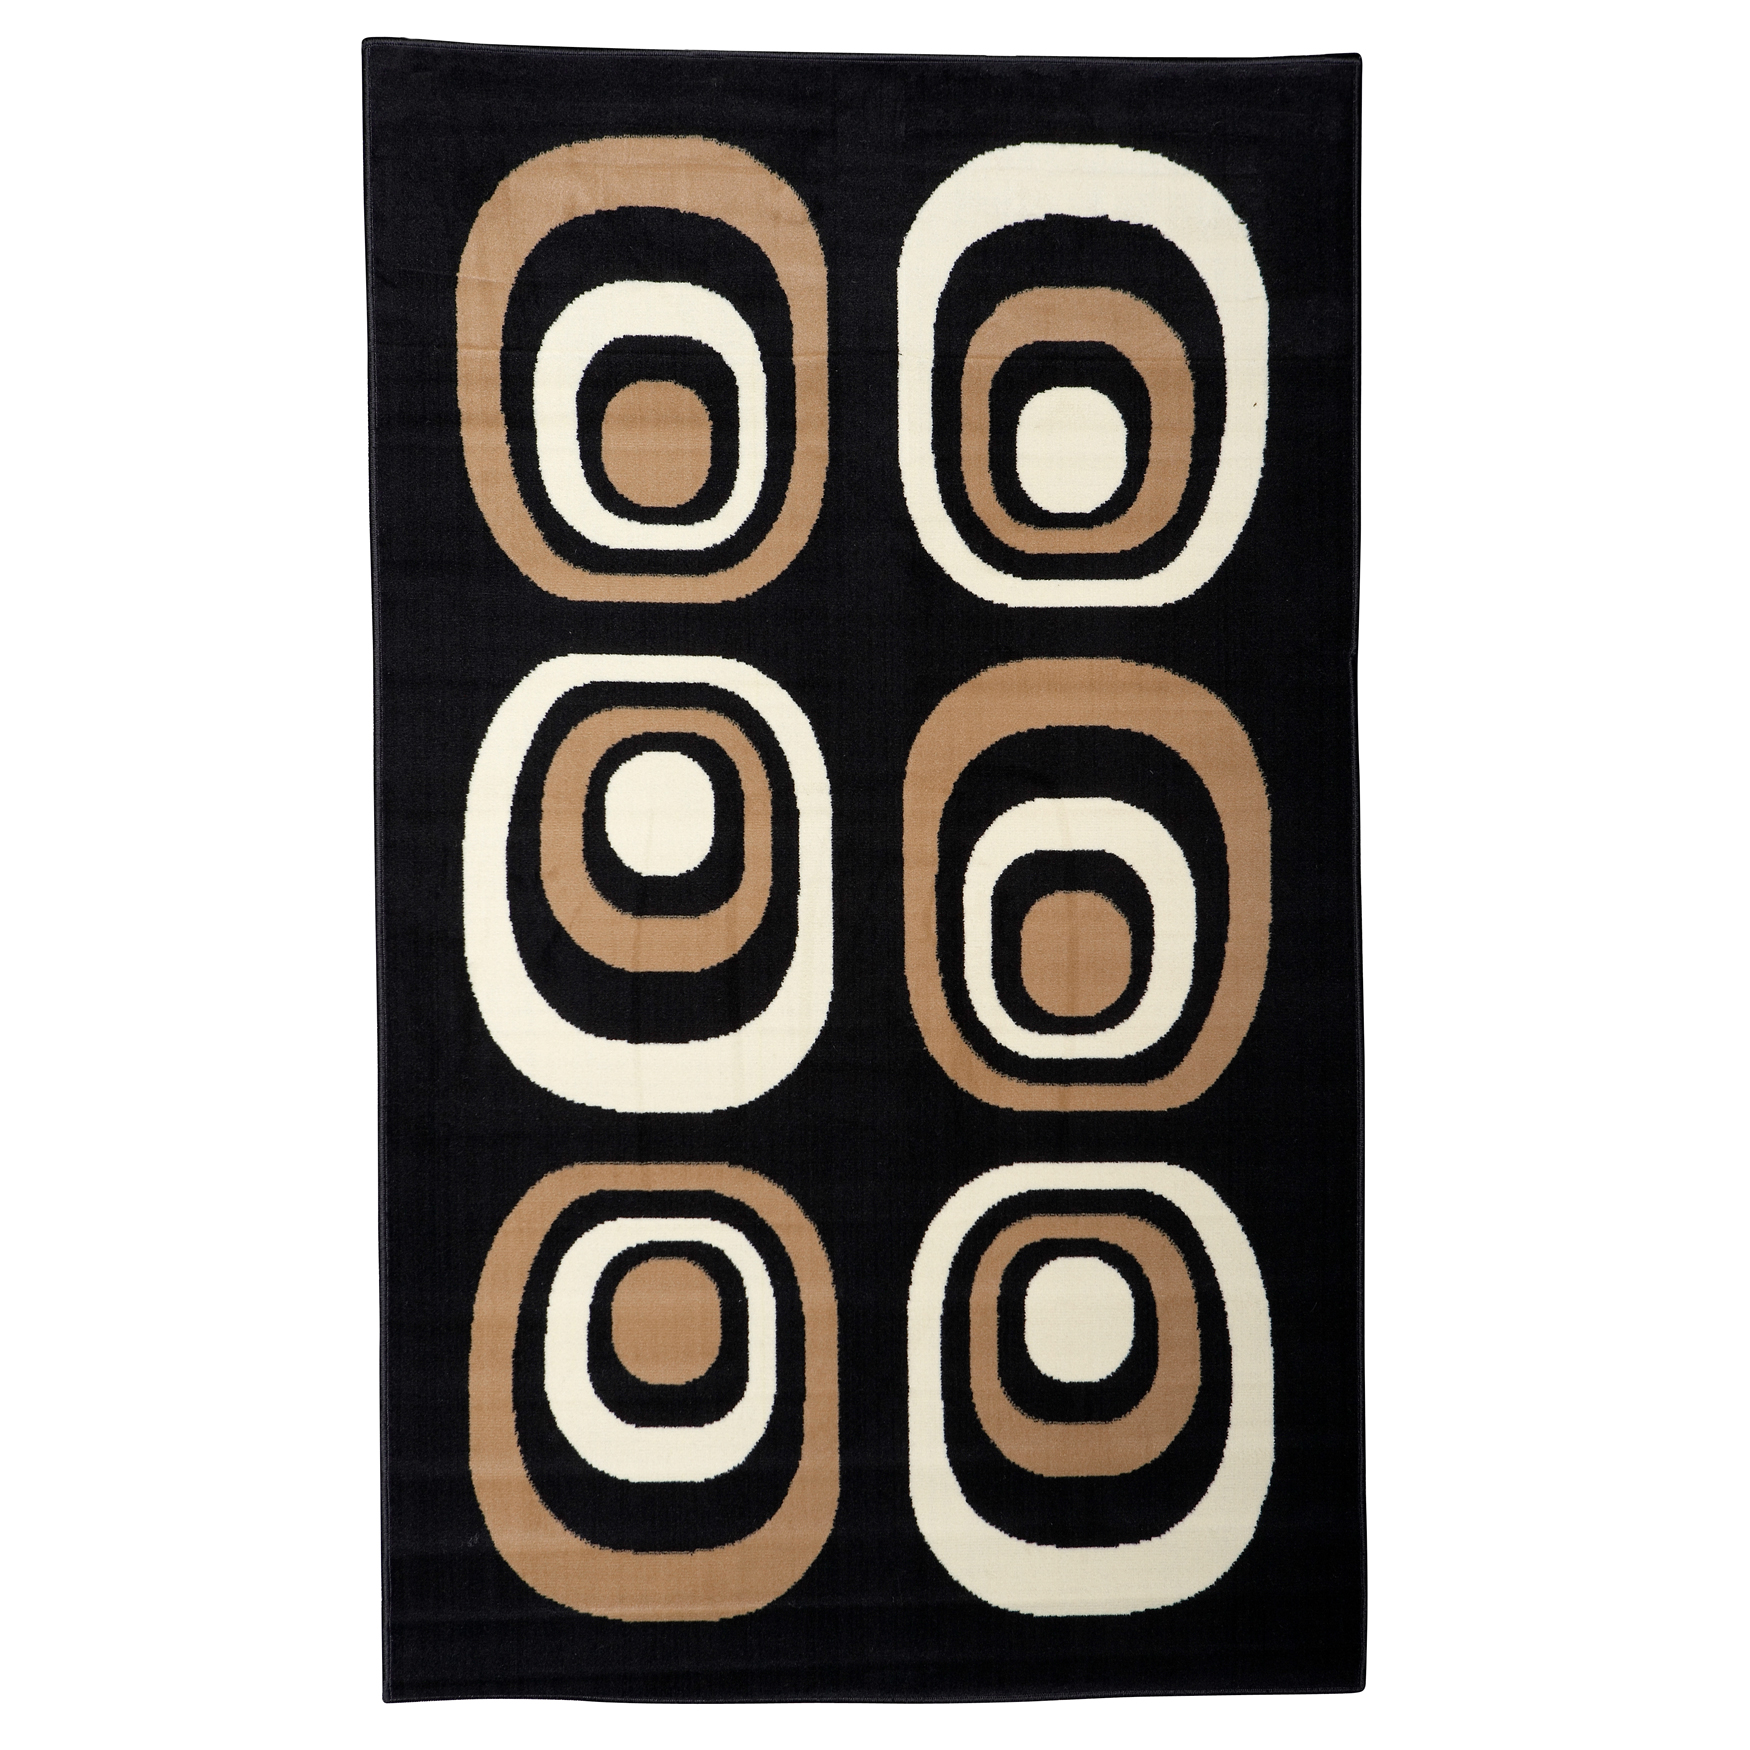 Capri Black/Tan 5' x 7' Area Rug, BLACK TAN